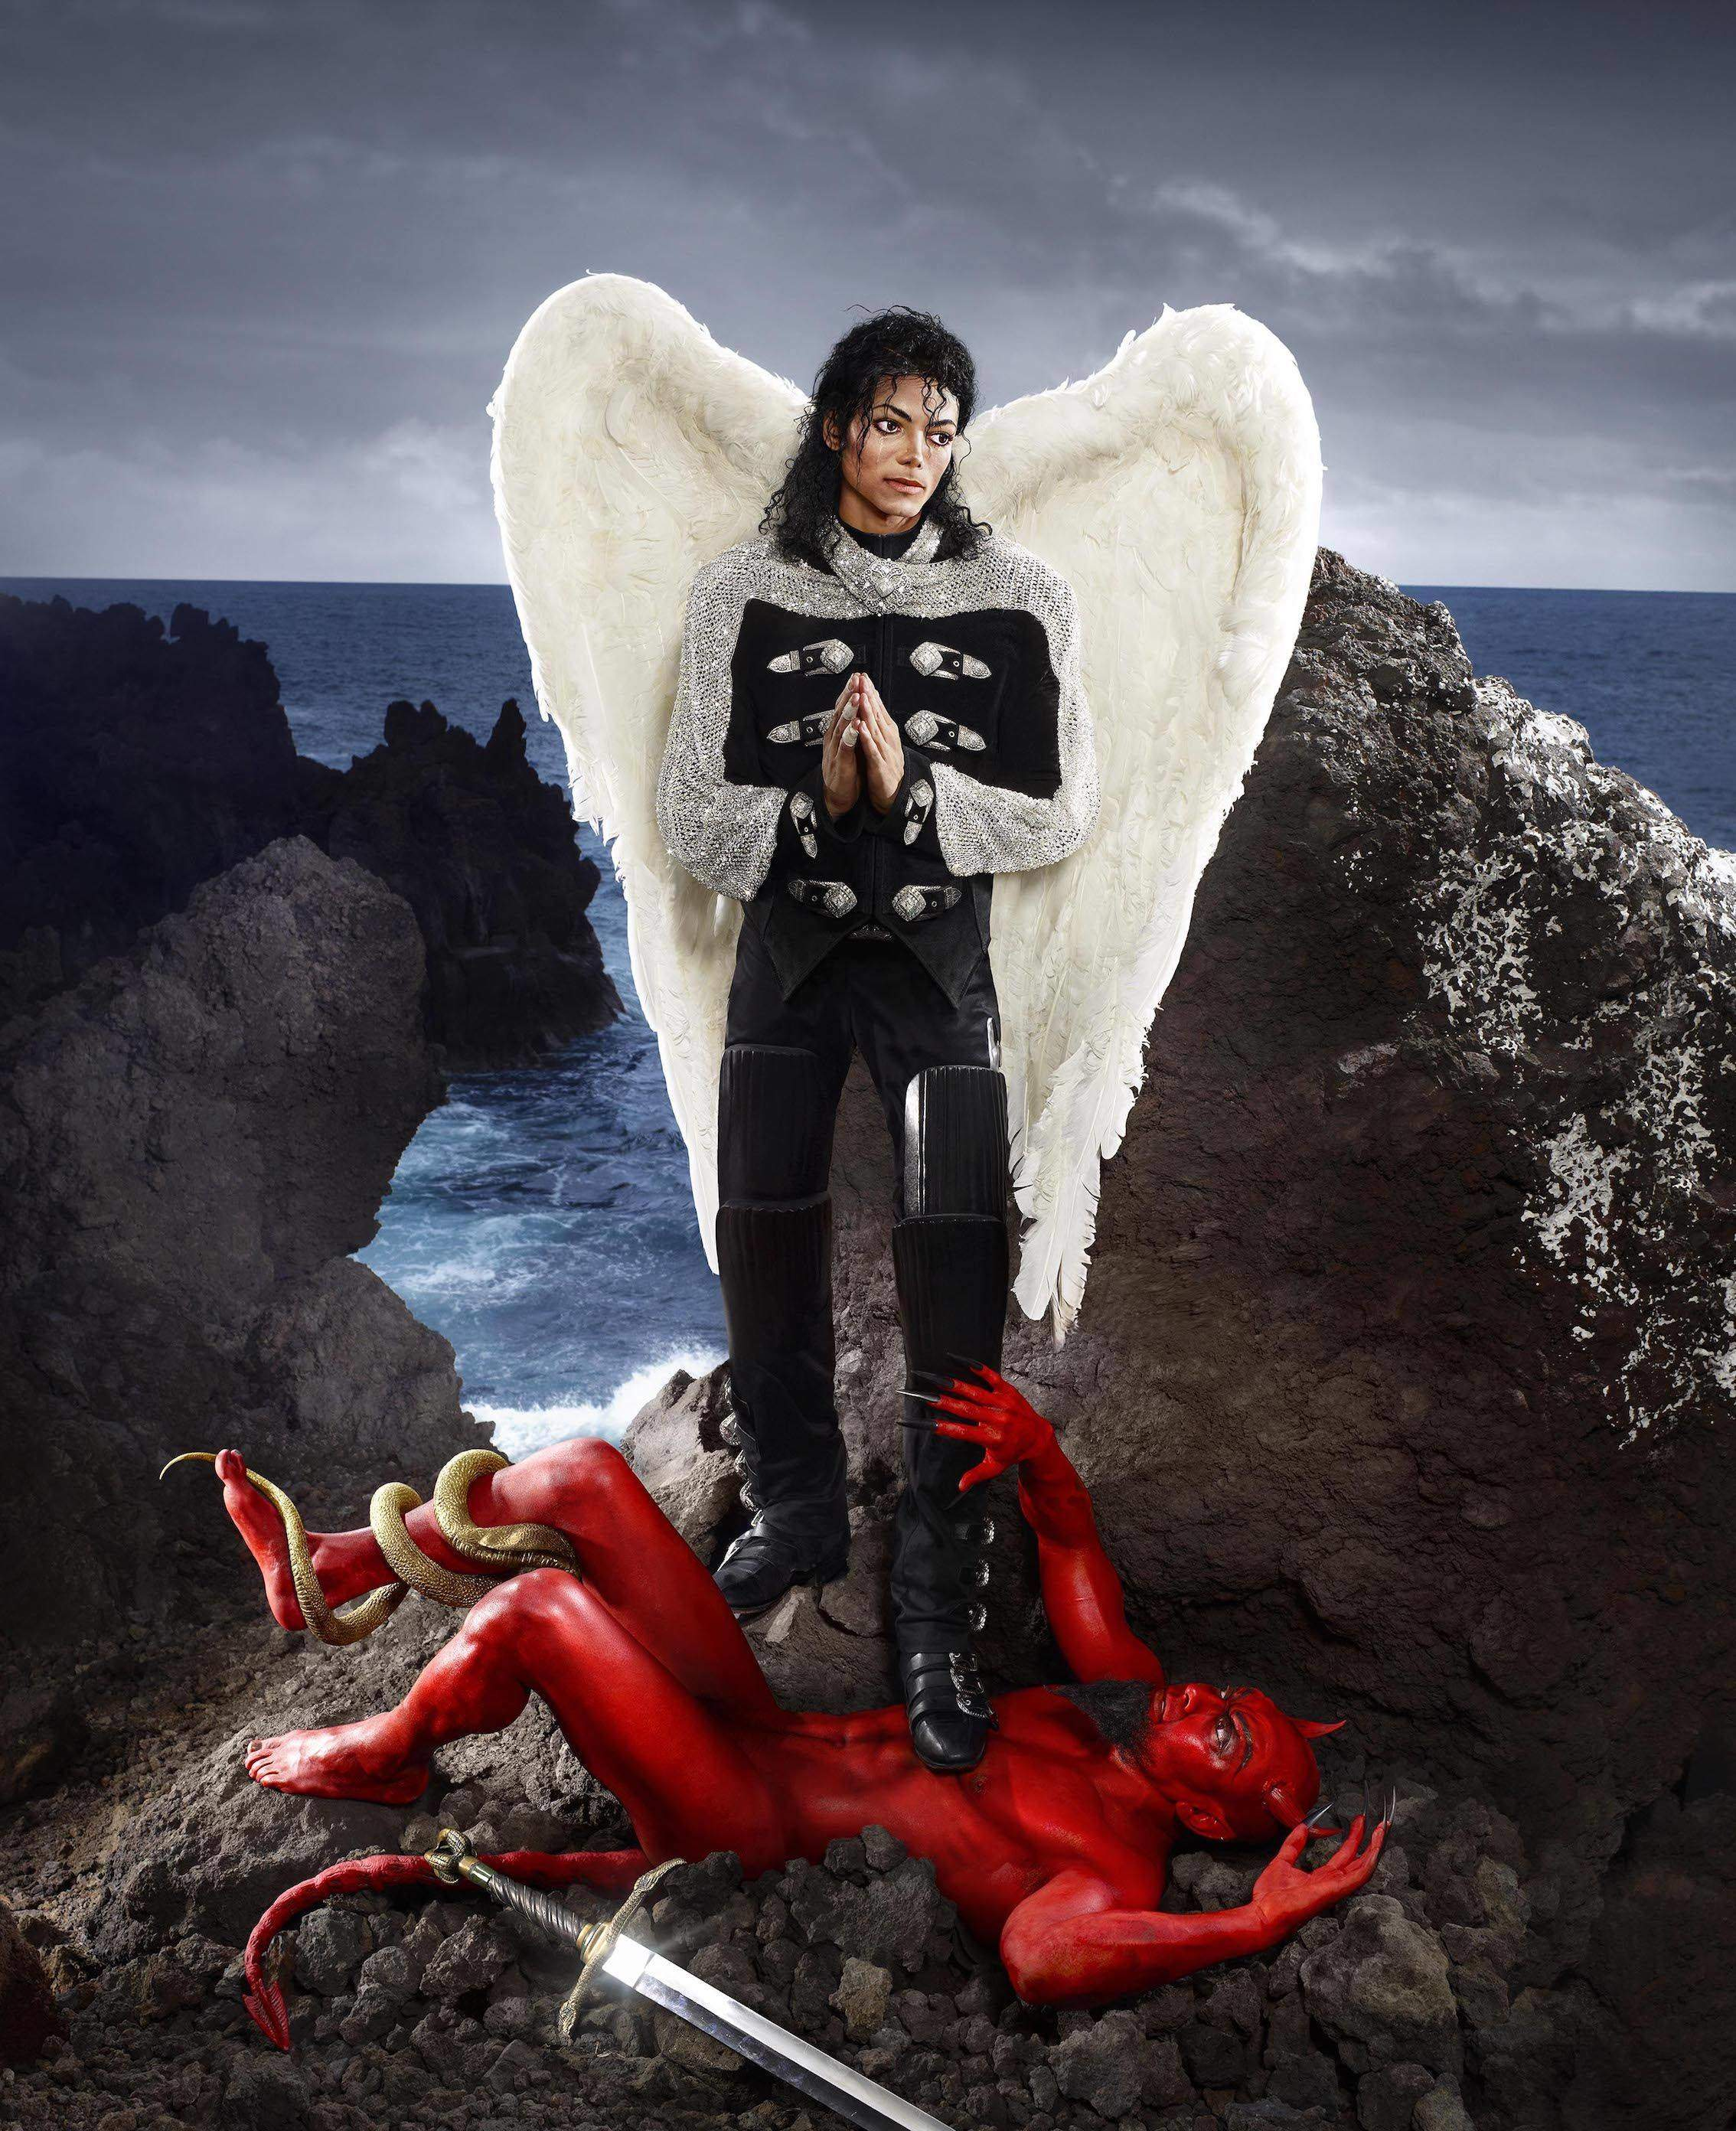 david-lachapelle-archangel